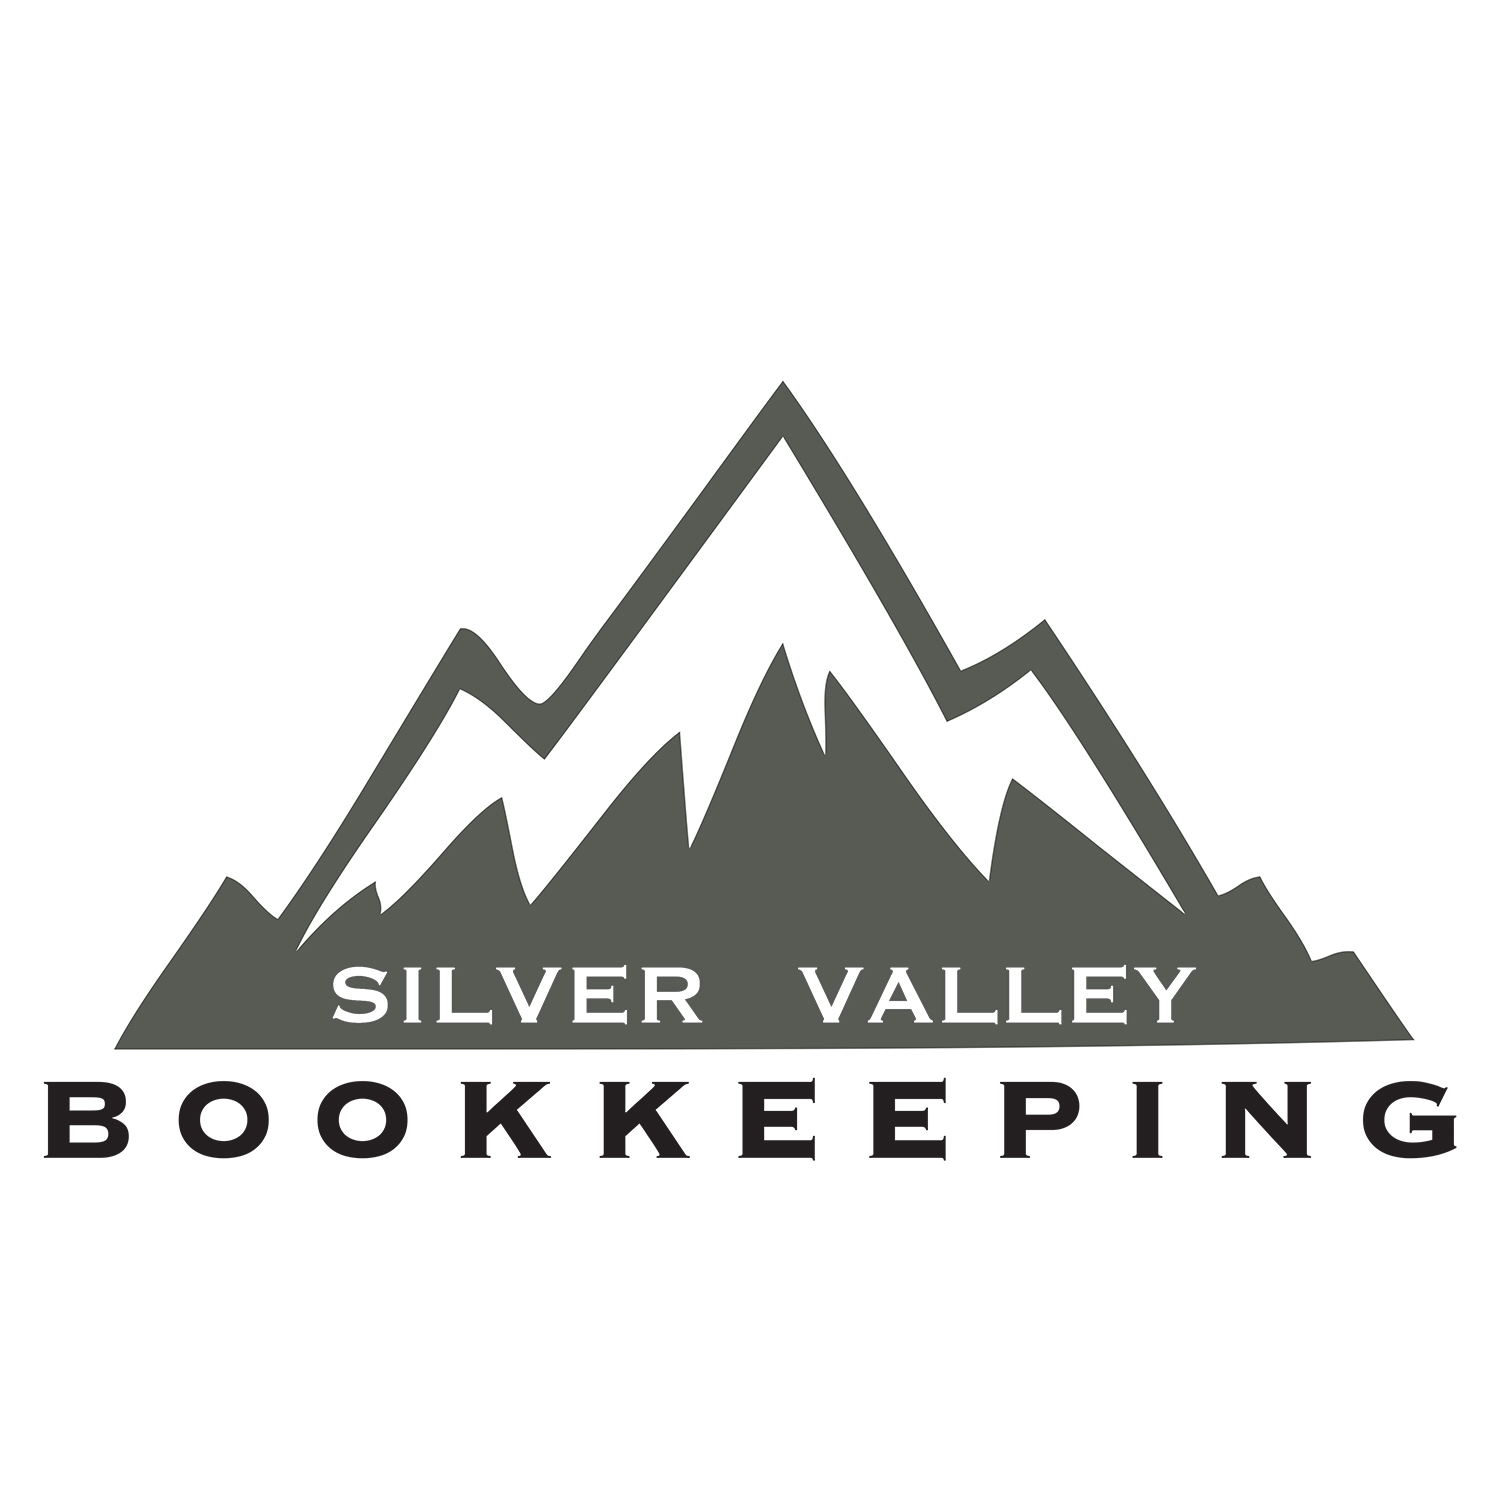 Silver Valley Bookkeeping